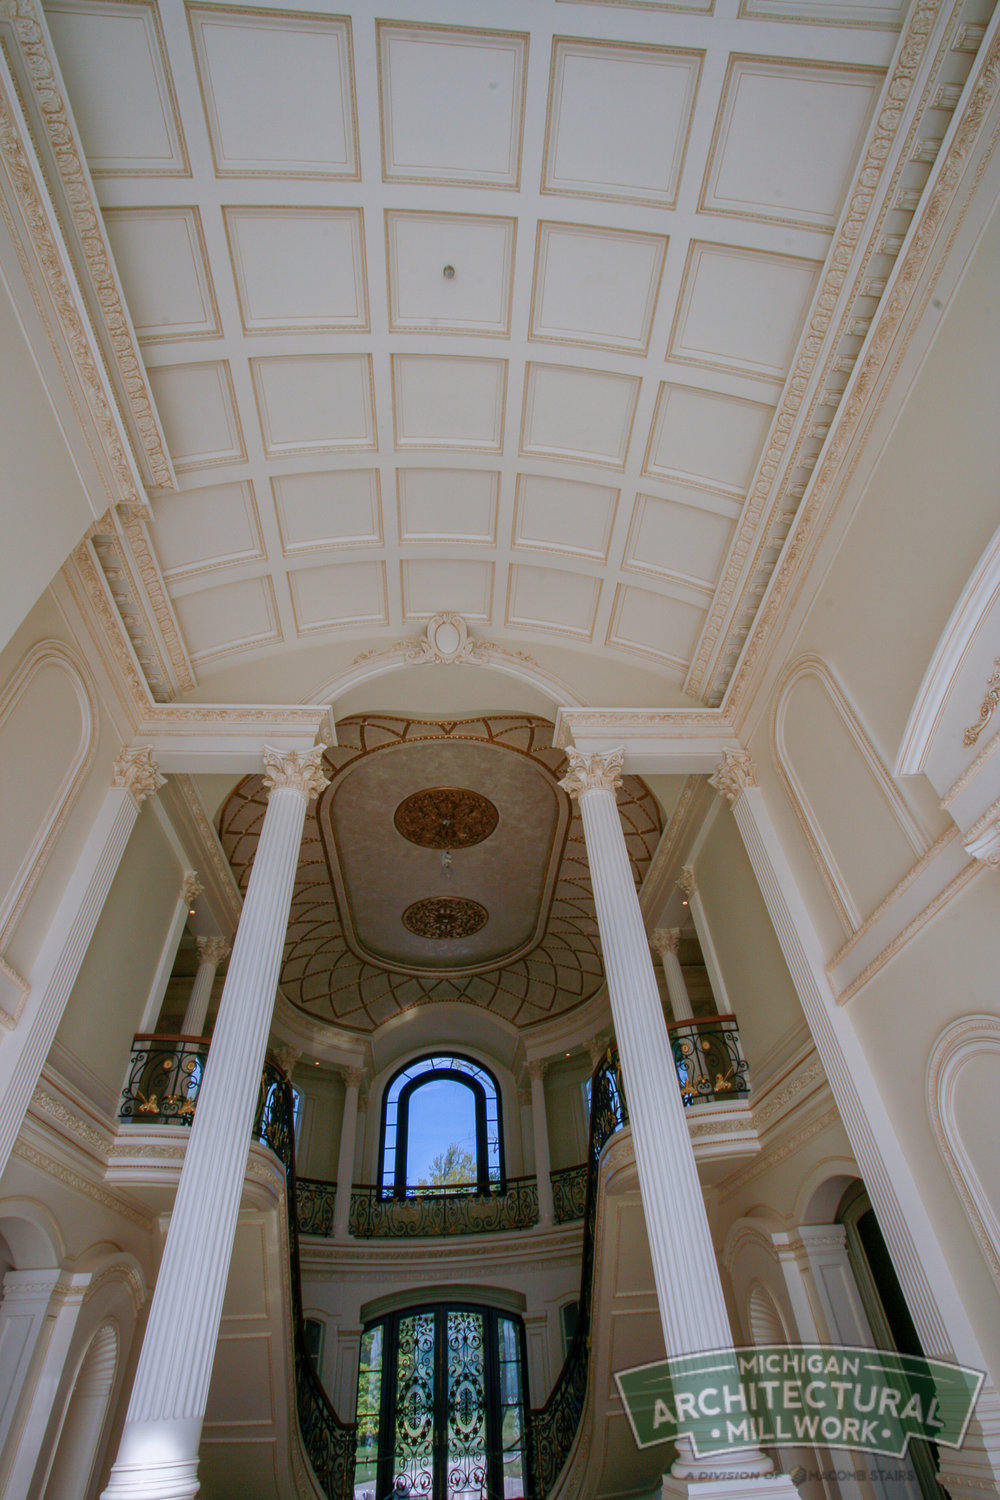 Michigan Architectural Millwork- Moulding and Millwork Photo-190.jpg